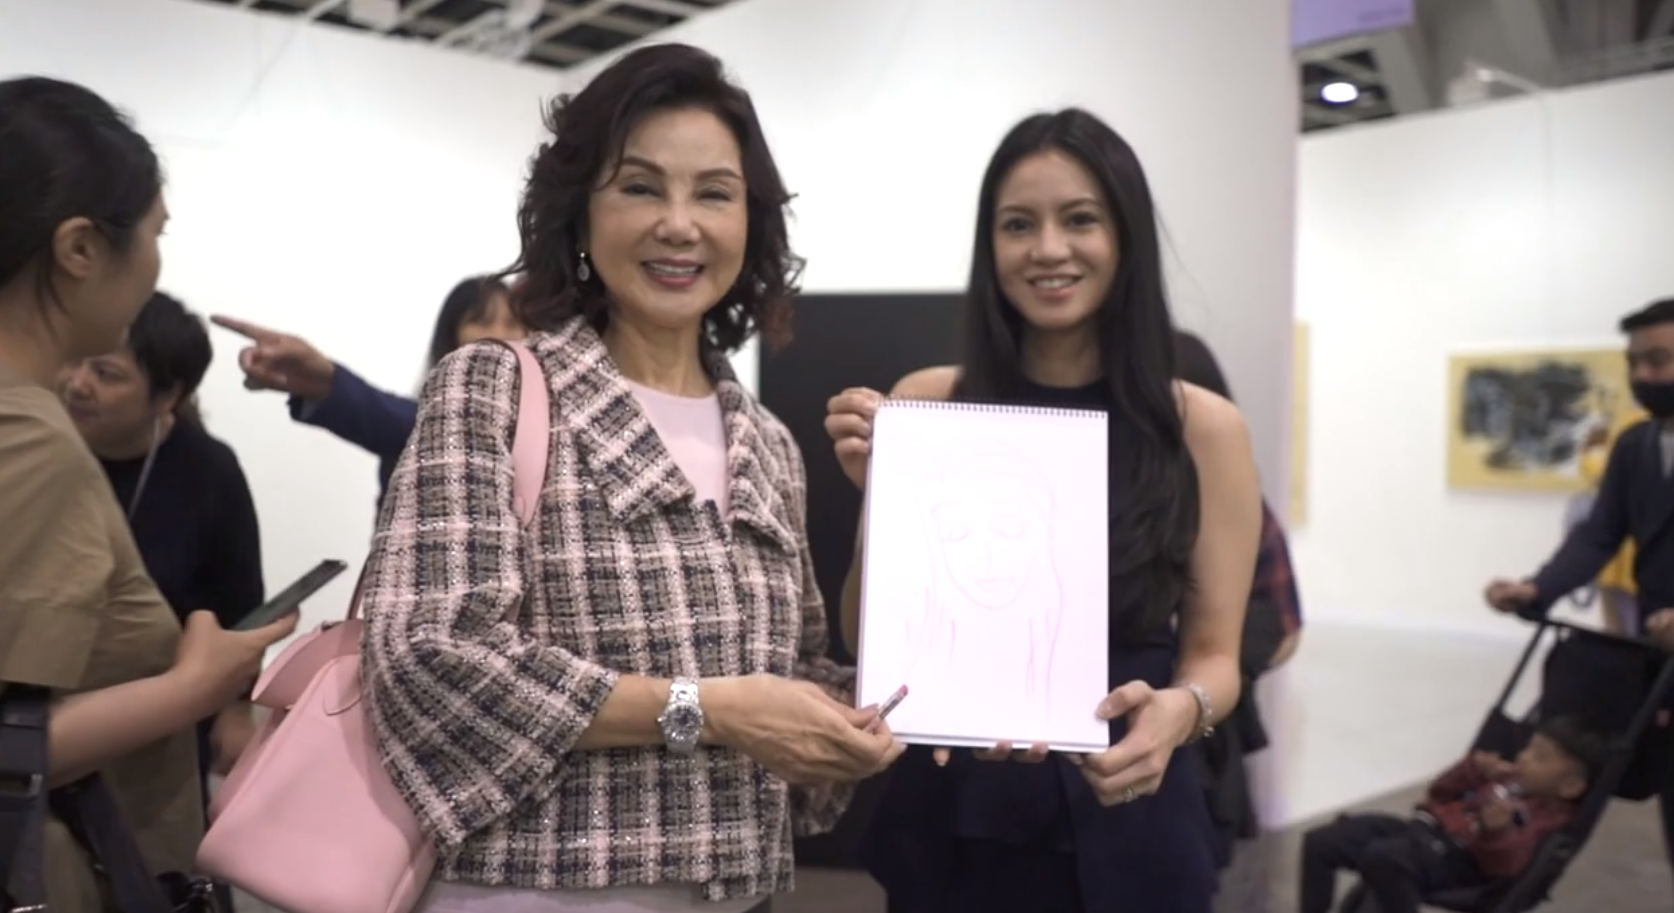 Video: 1-Minute Artists At Art Basel Hong Kong 2019